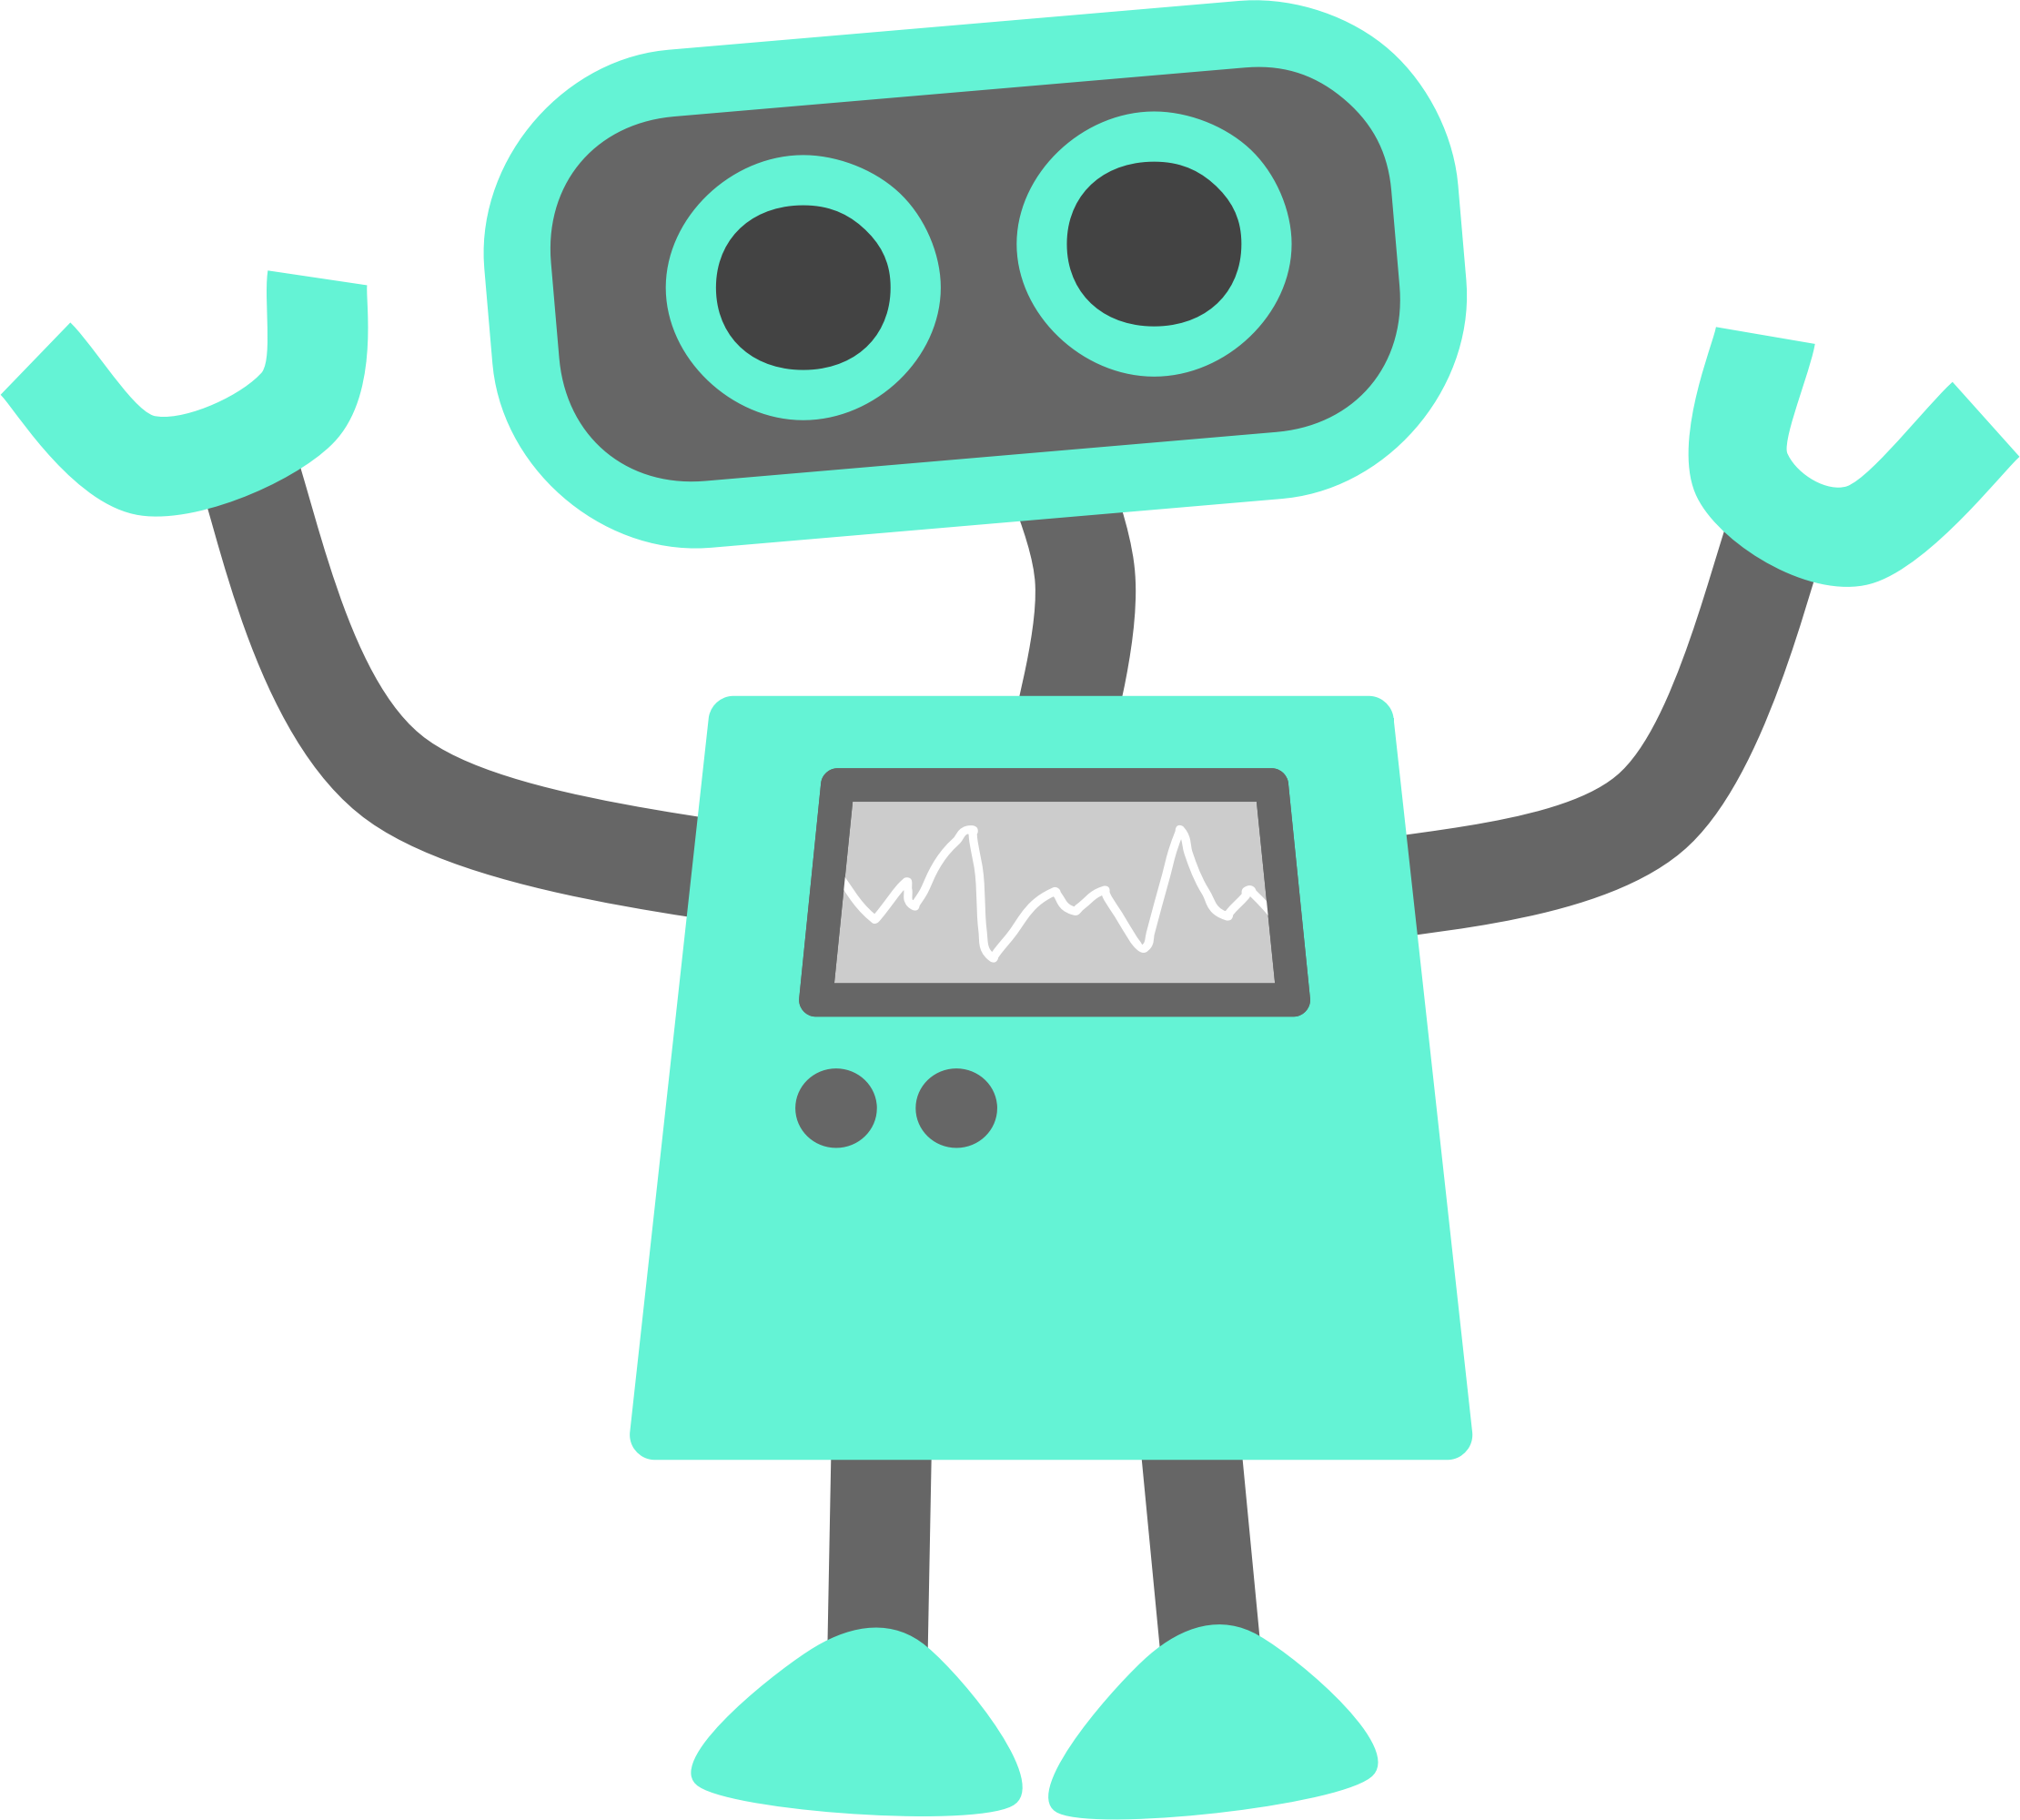 2220x2000 Blue Robot By @scout, A Blue Robot, On @openclipart Pix Ideas